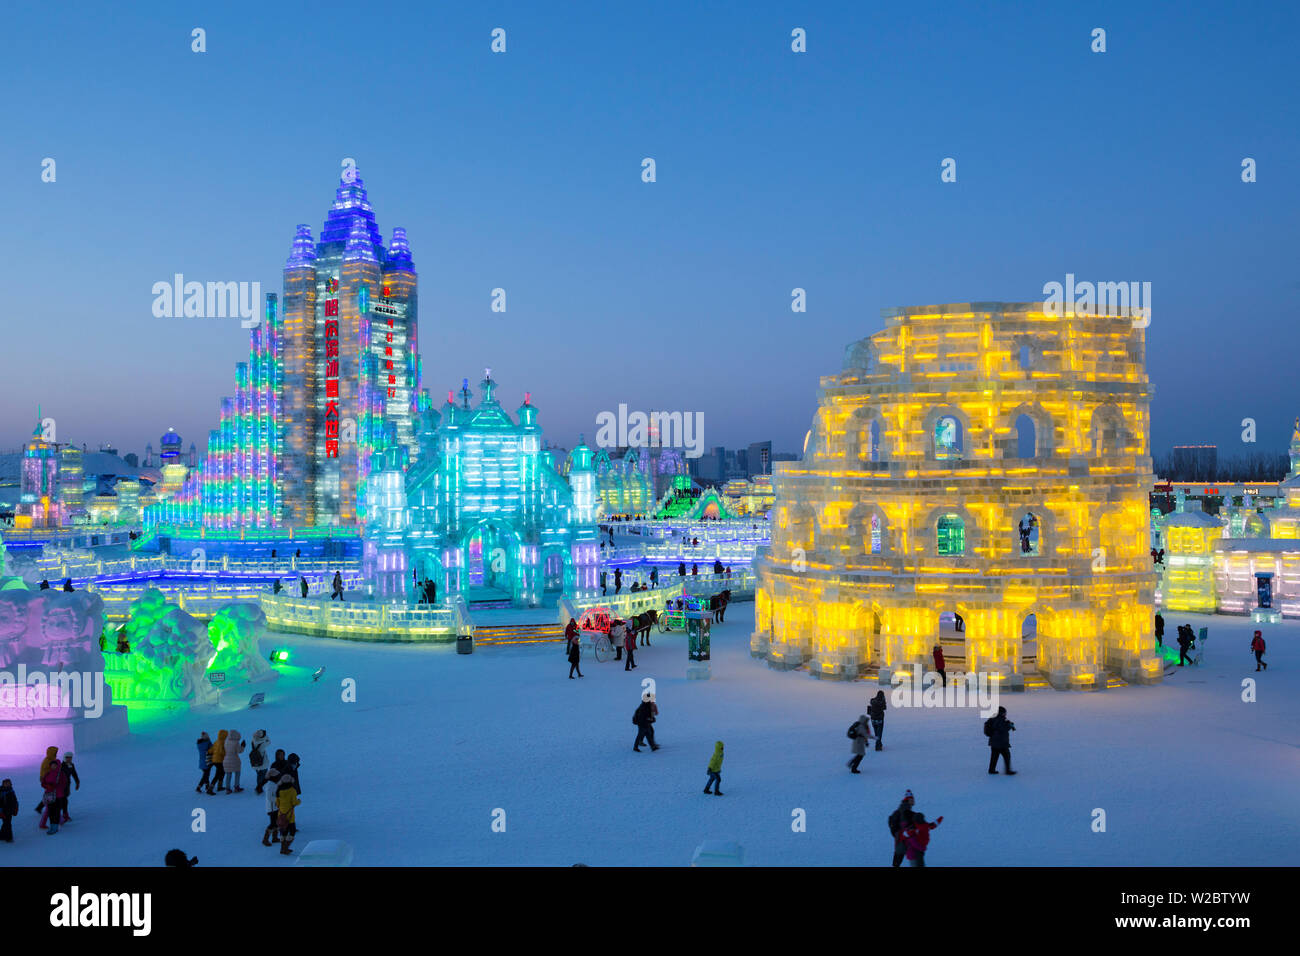 Spectacular illuminated ice sculptures at the Harbin Ice and Snow Festival in Heilongjiang Province, Harbin,  China Stock Photo